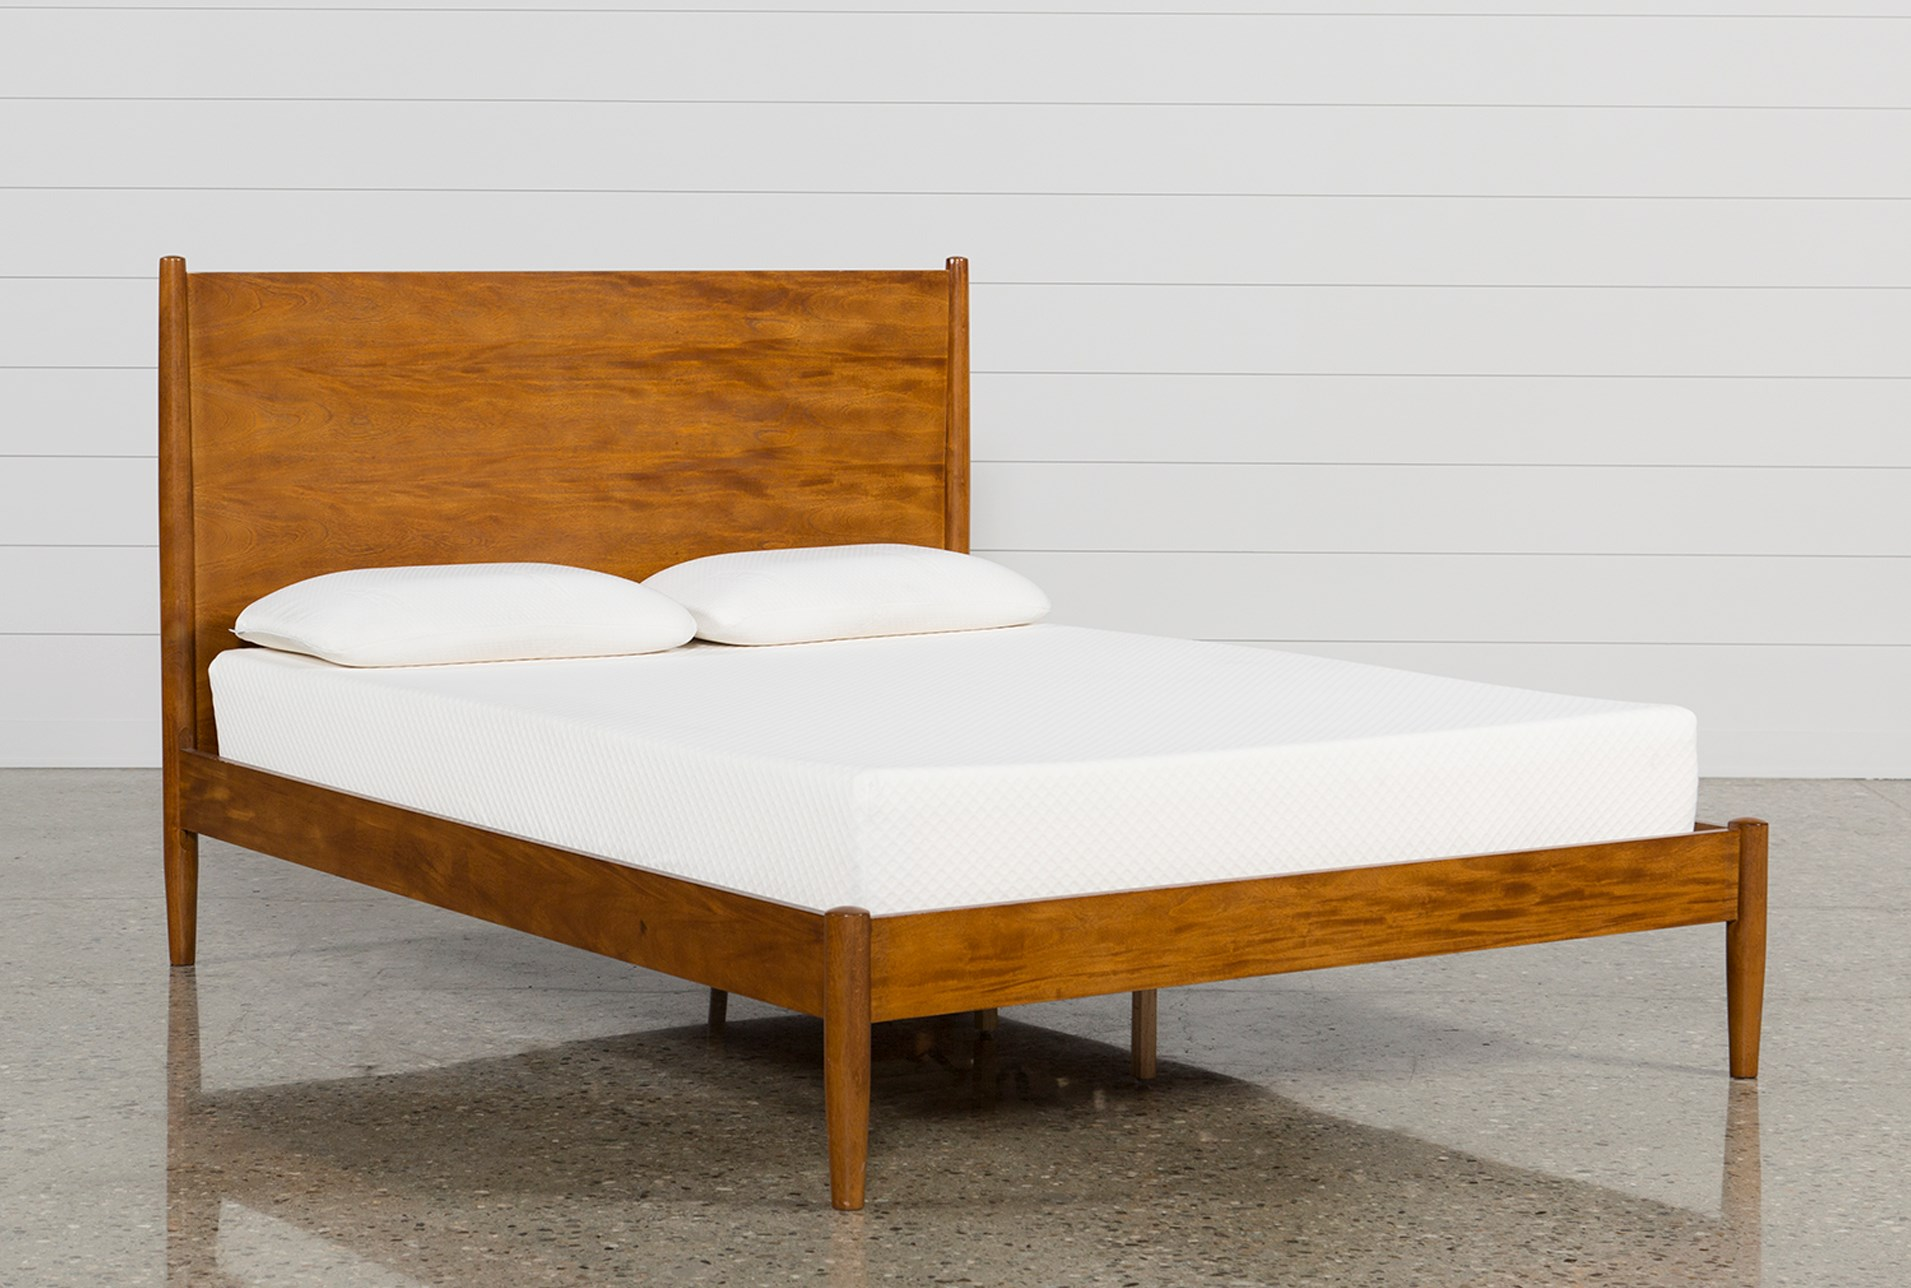 platform bed frame. Alton Cherry Queen Platform Bed (Qty: 1) Has Been Successfully Added To Your Cart. Frame D